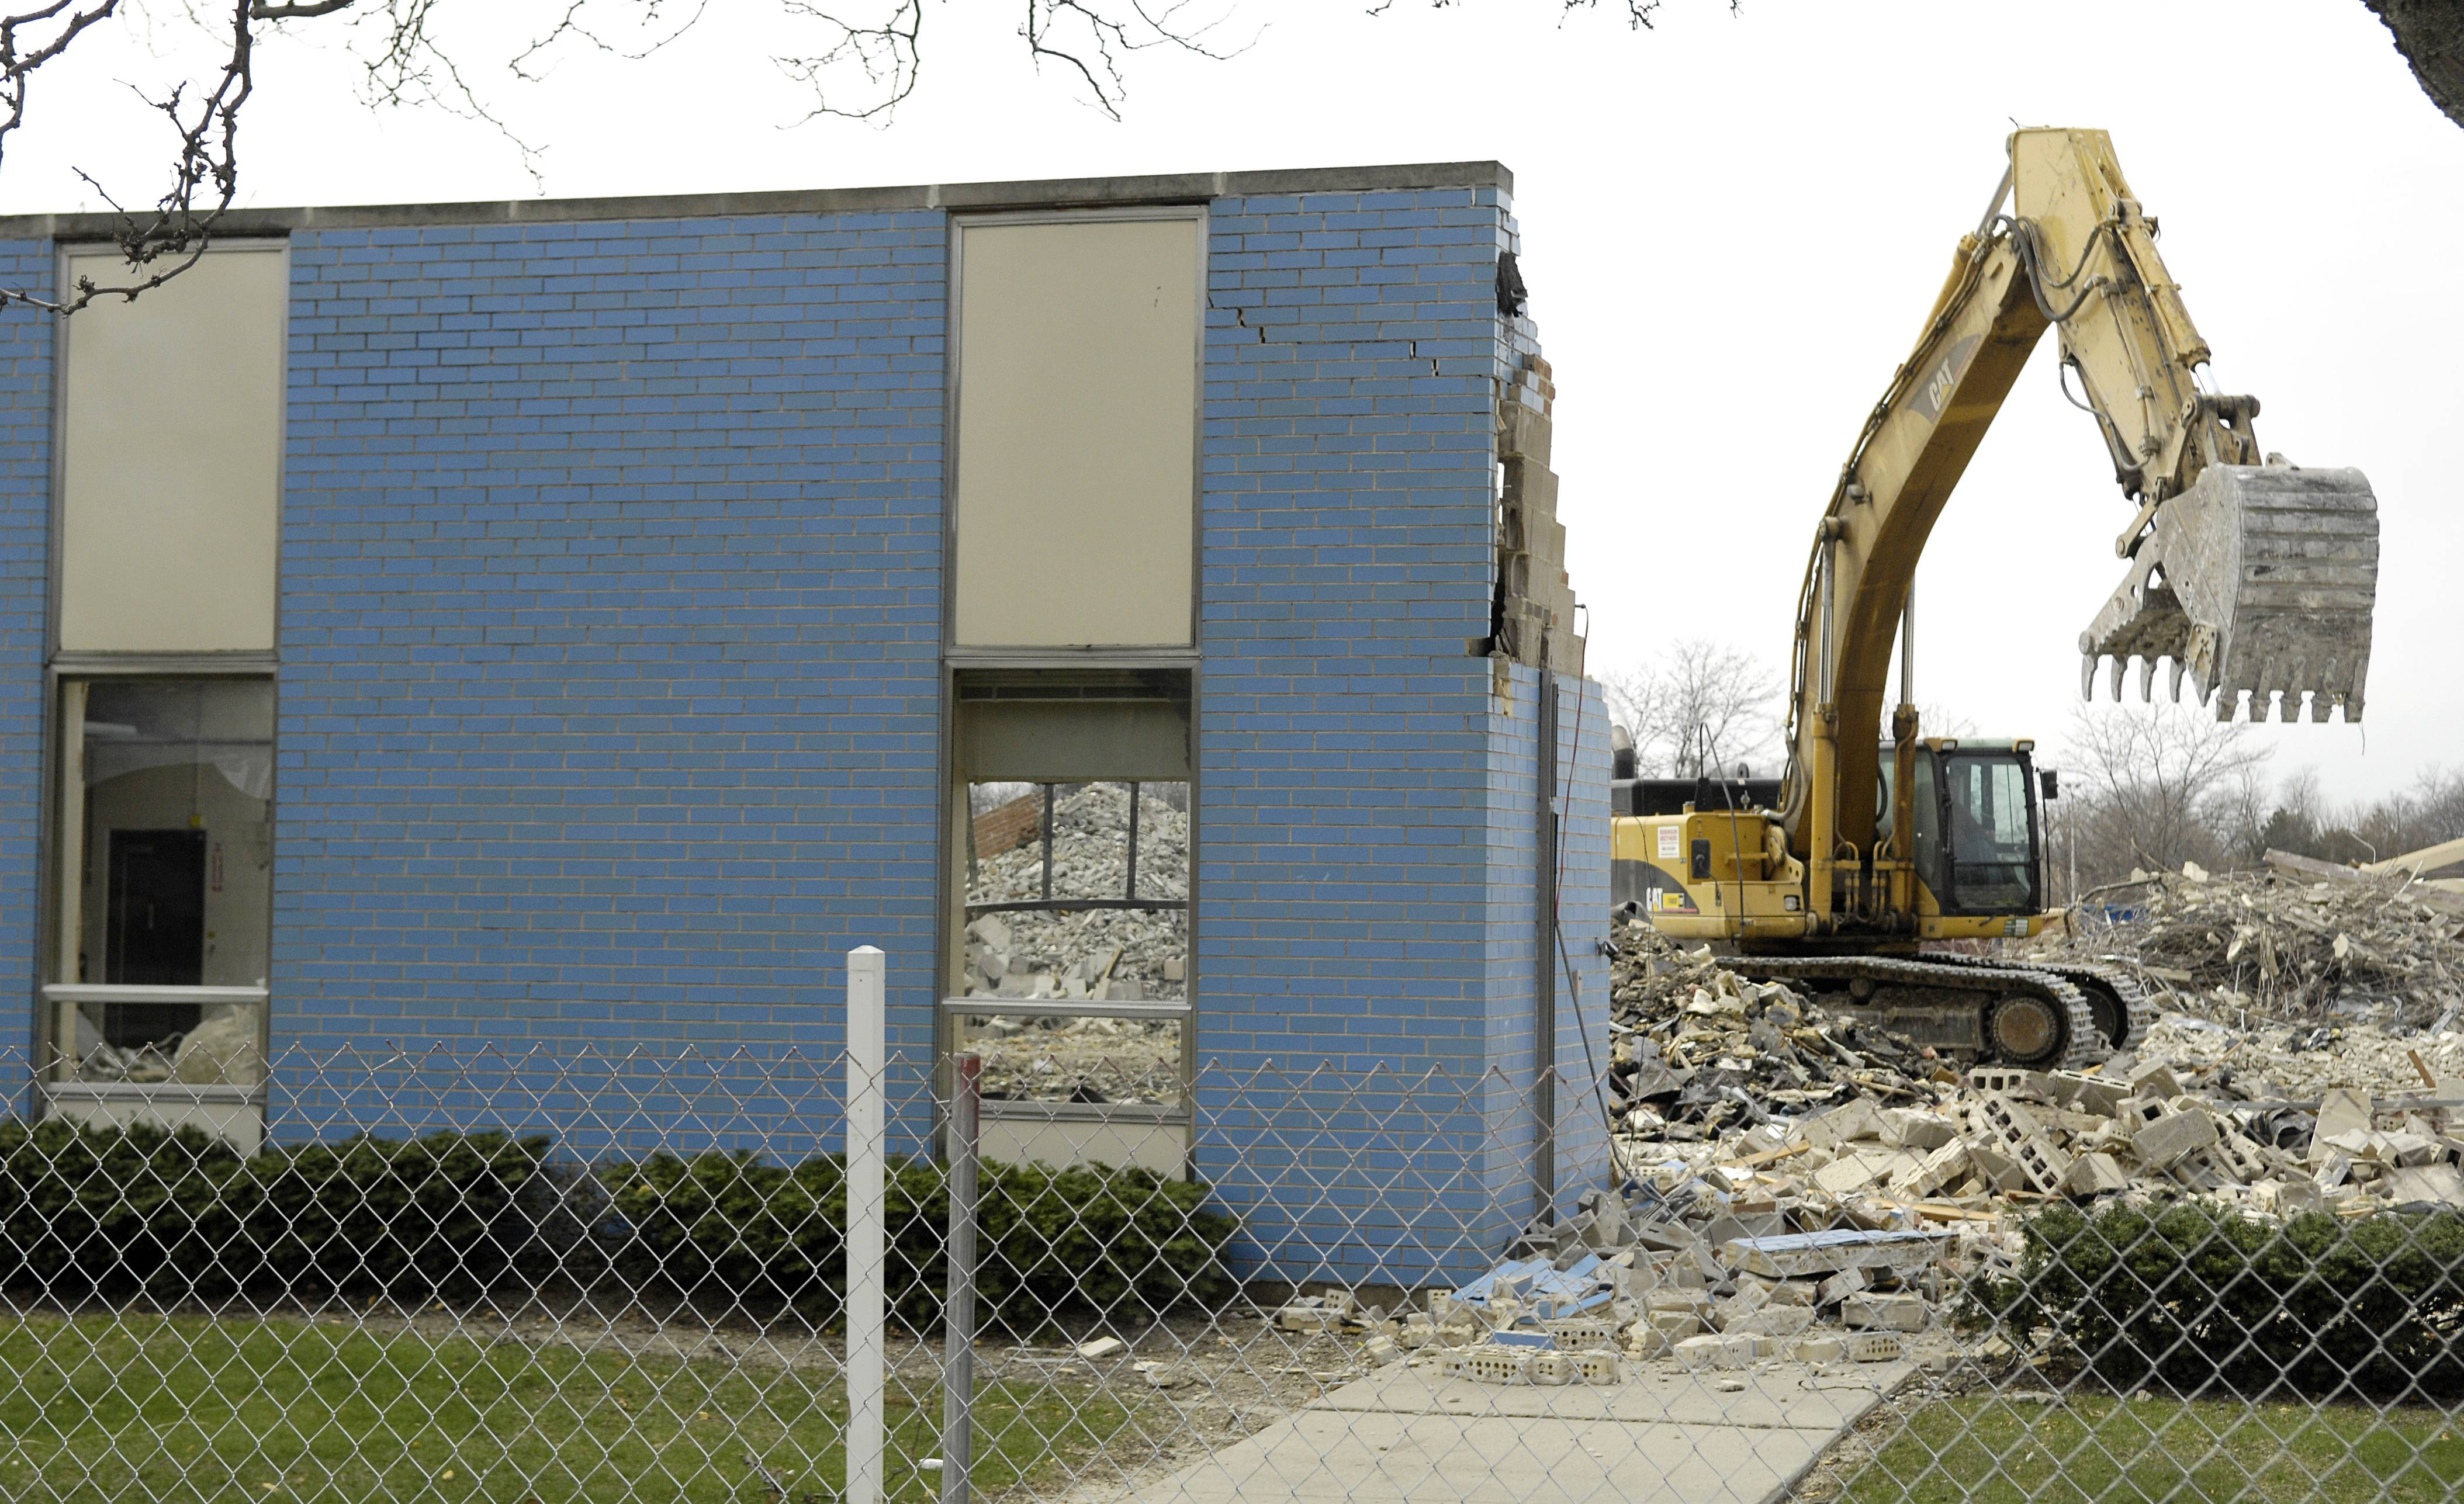 The demolition of the former Siemens-Furnas factory at McKee Street and Van Nortwick Avenue was in 2009. The final phase of remediating pollutants on the site is due to start in June.